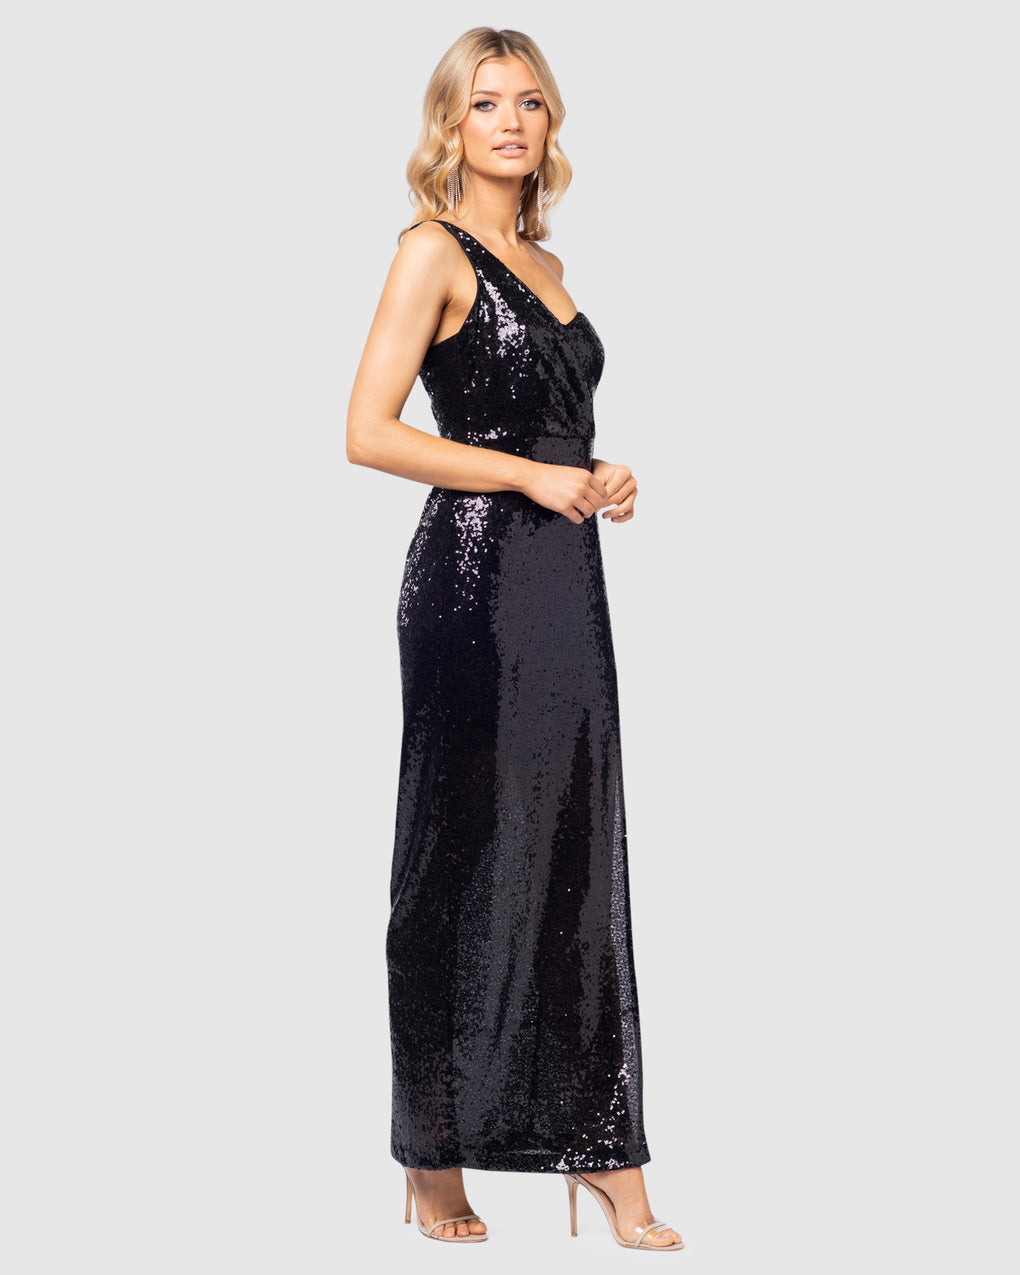 Olinta Gown